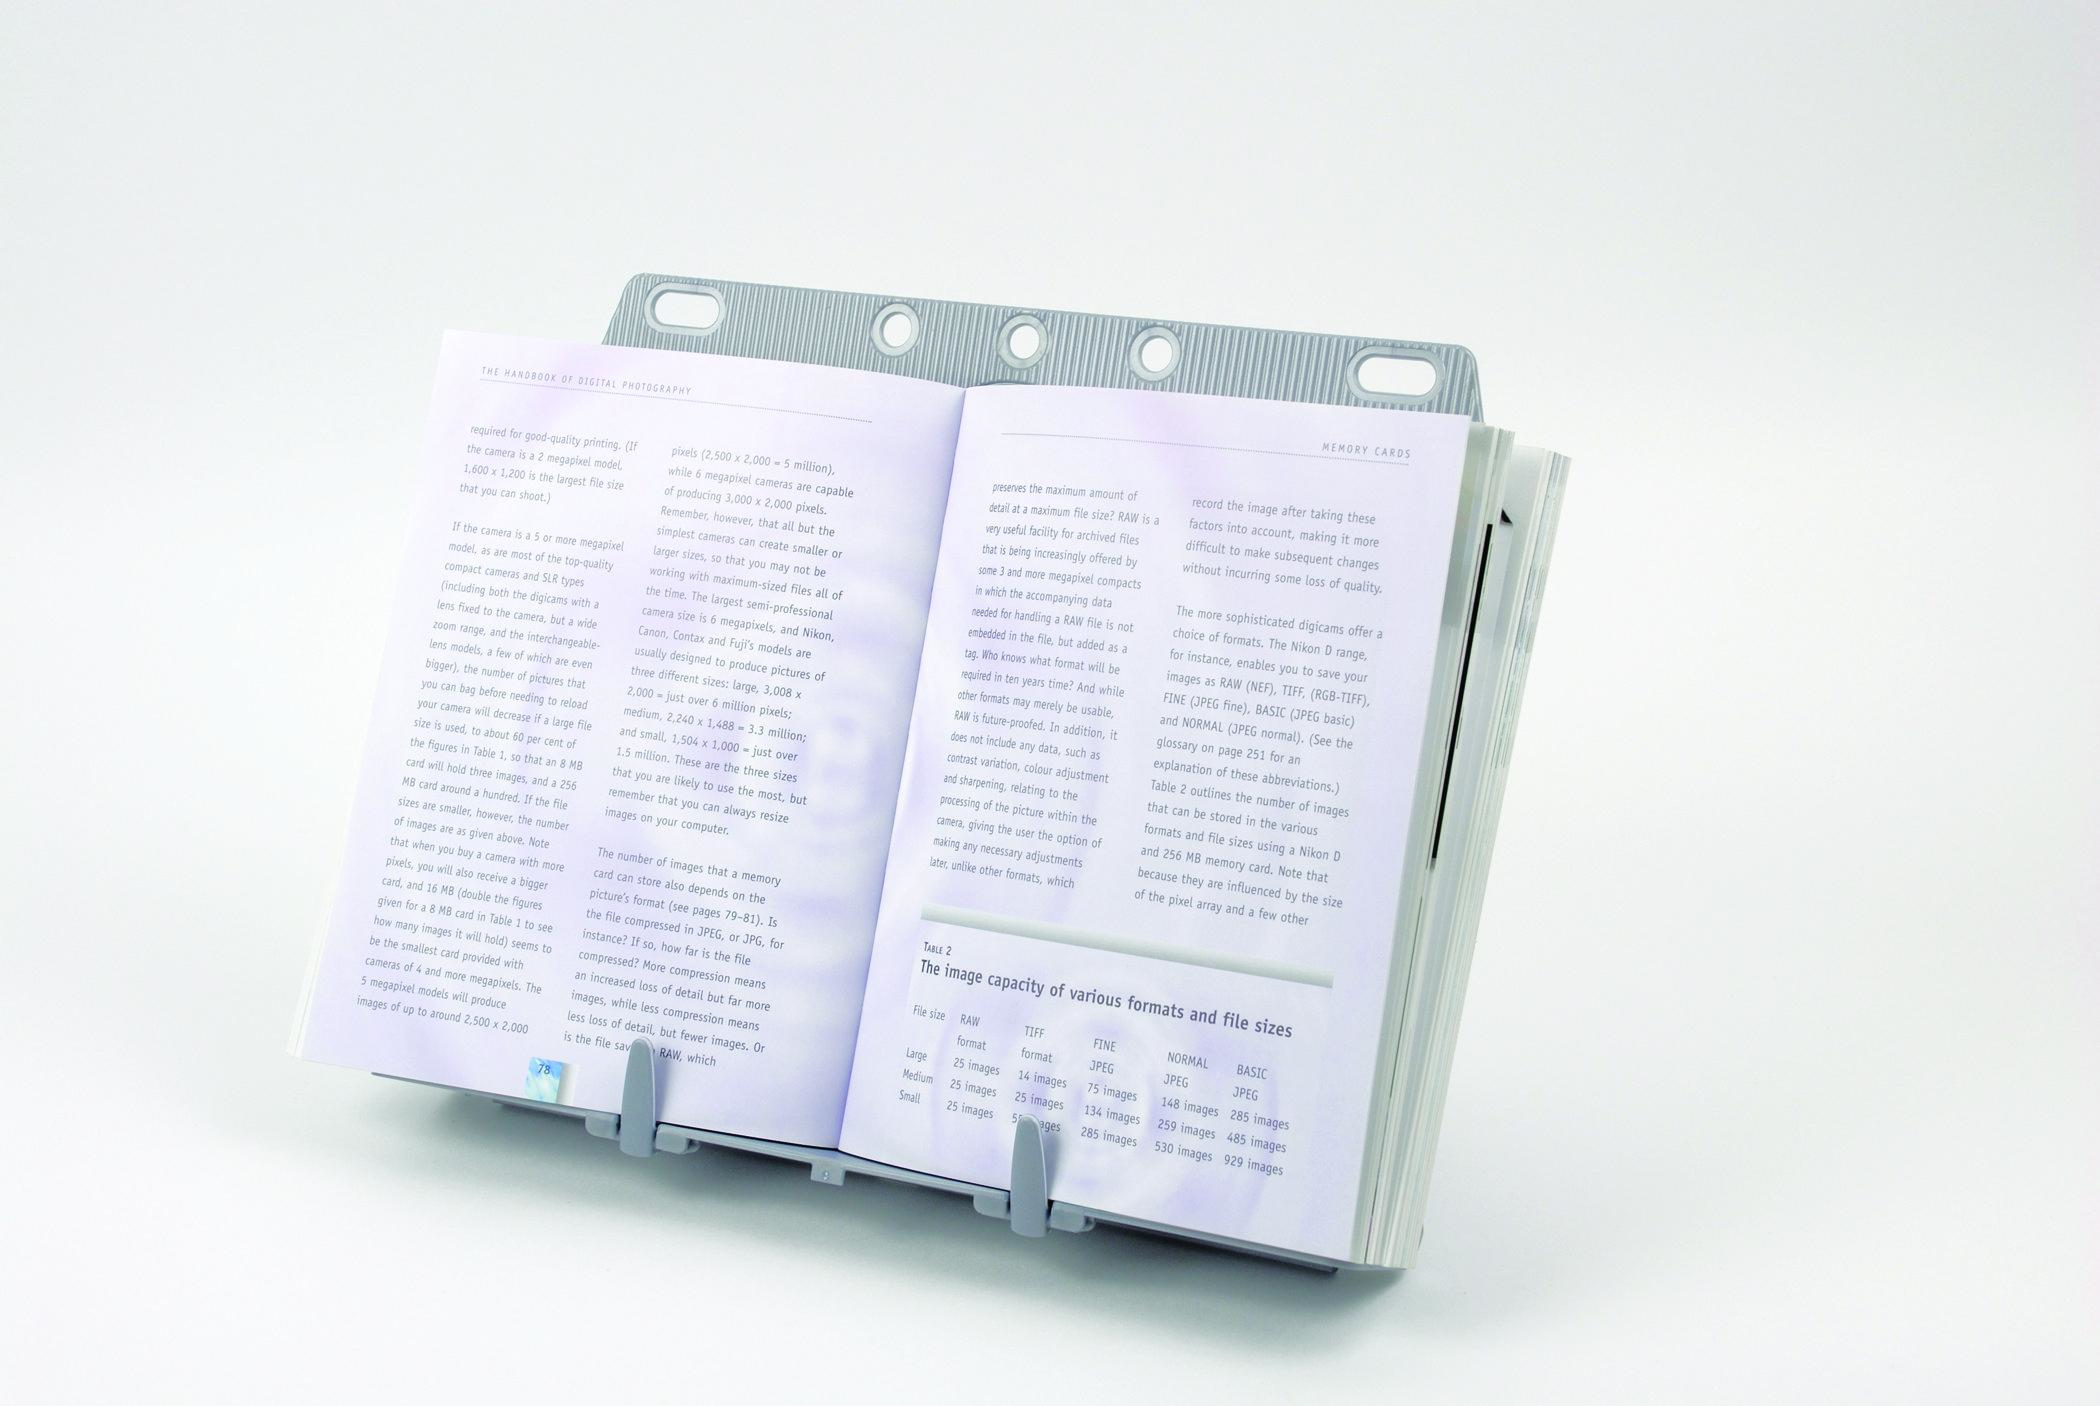 21140 fellowes Fellowes Booklift Copyholder Silver 21140 - AD01